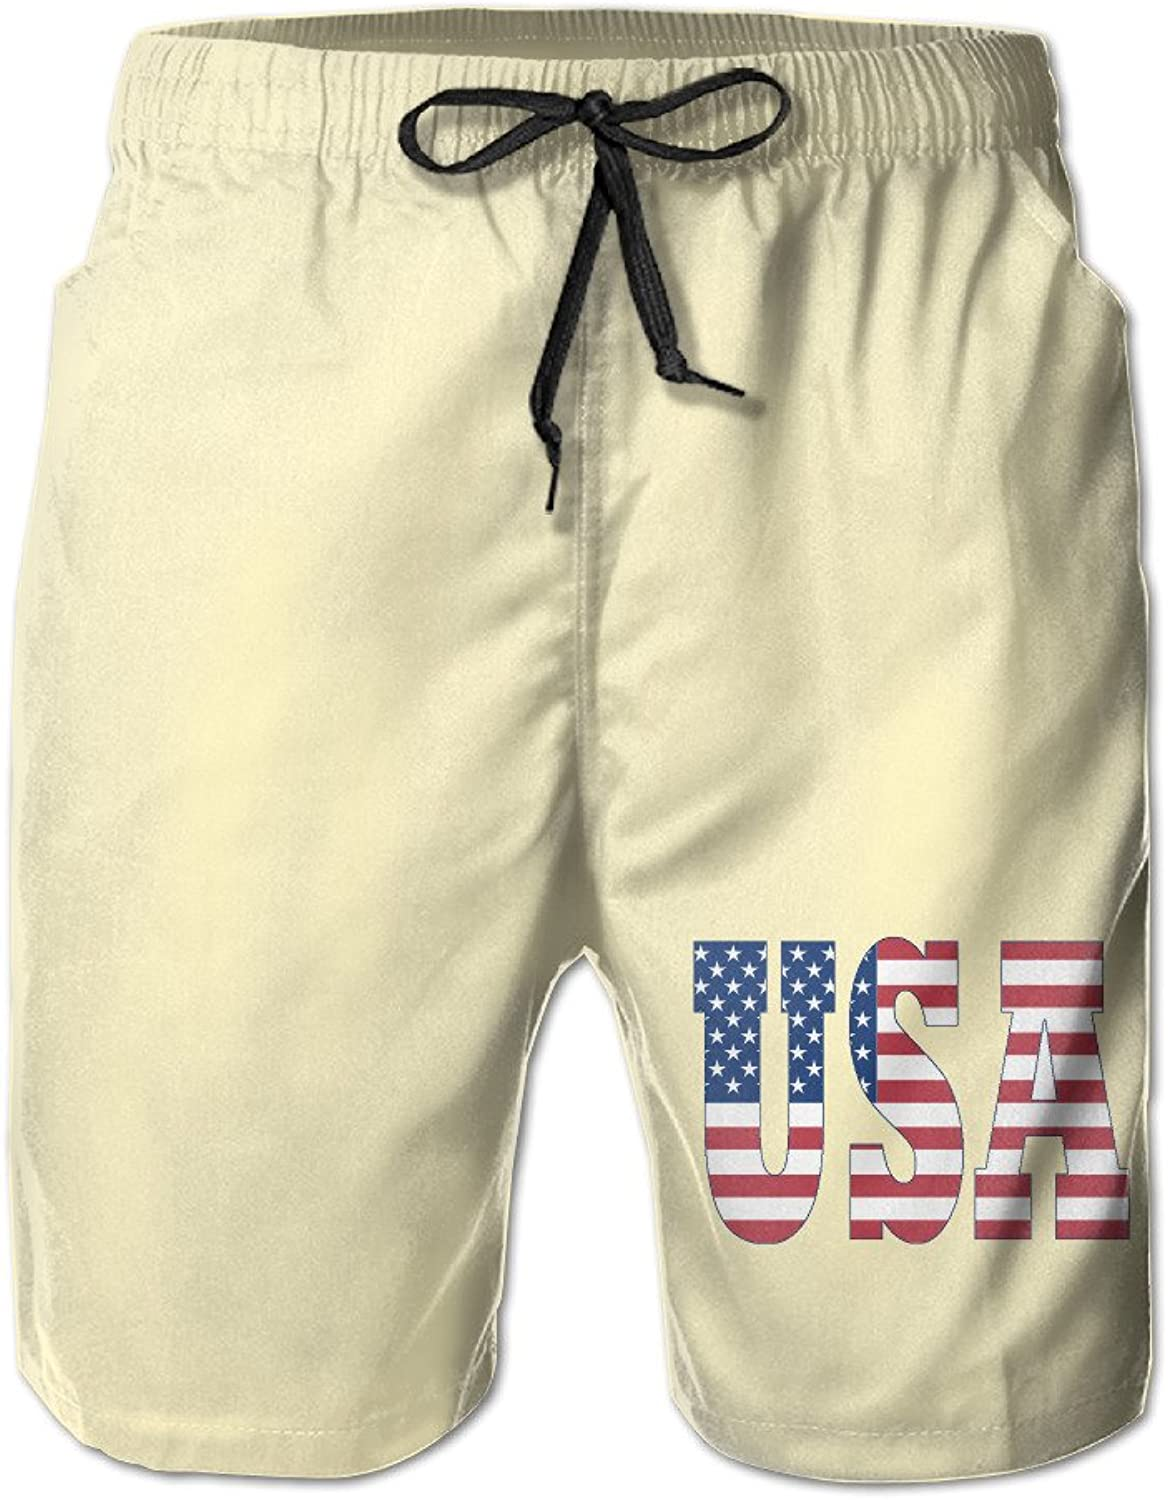 Men USA Letters Make The American Flag Board Shorts Swim Trunks